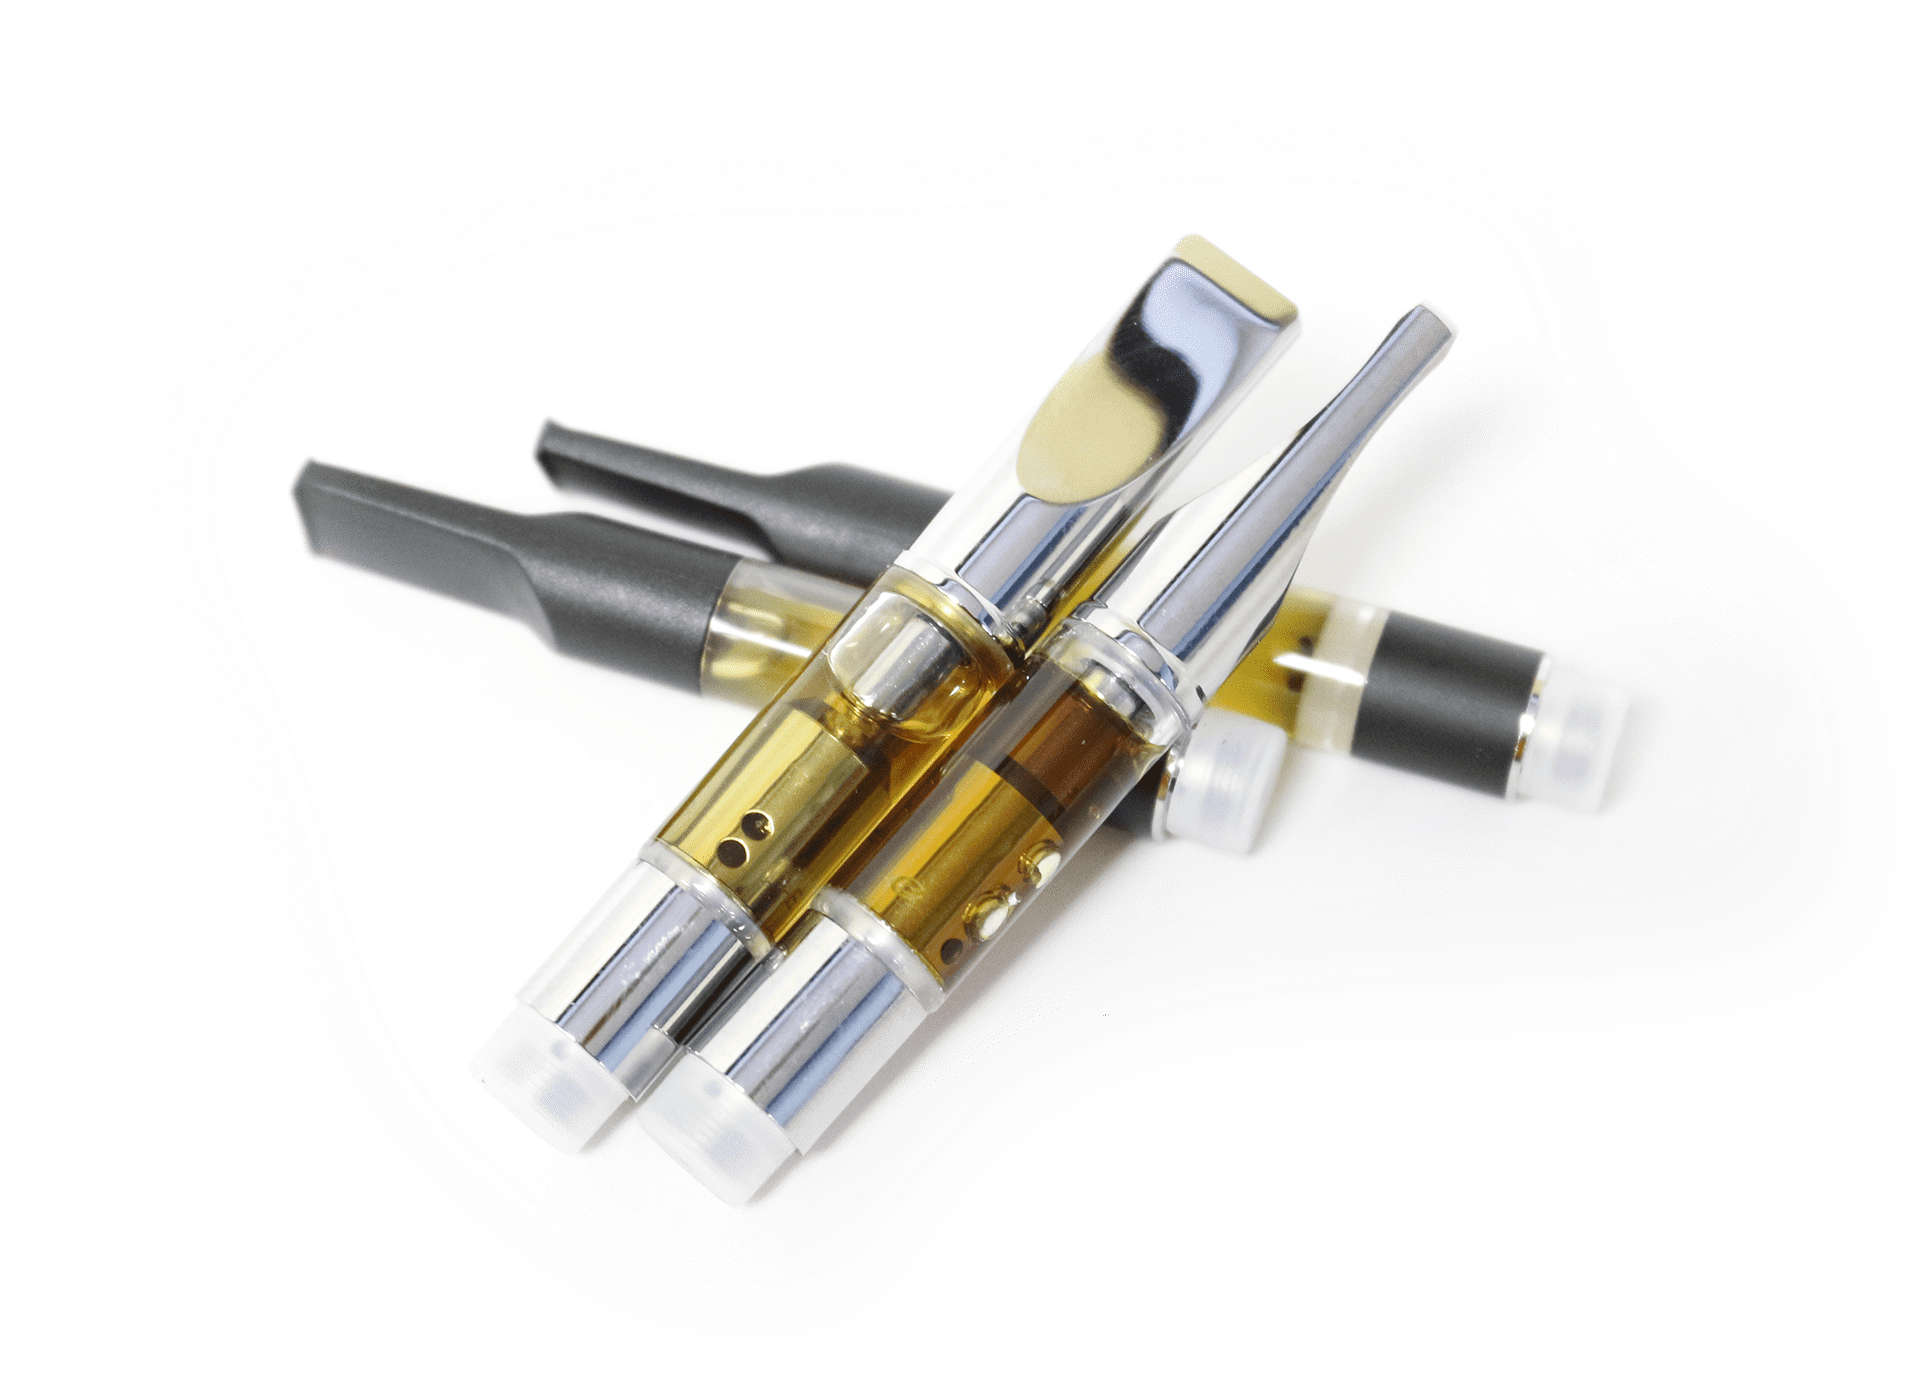 Four Vape Cartridges displaying oil in the cartridges